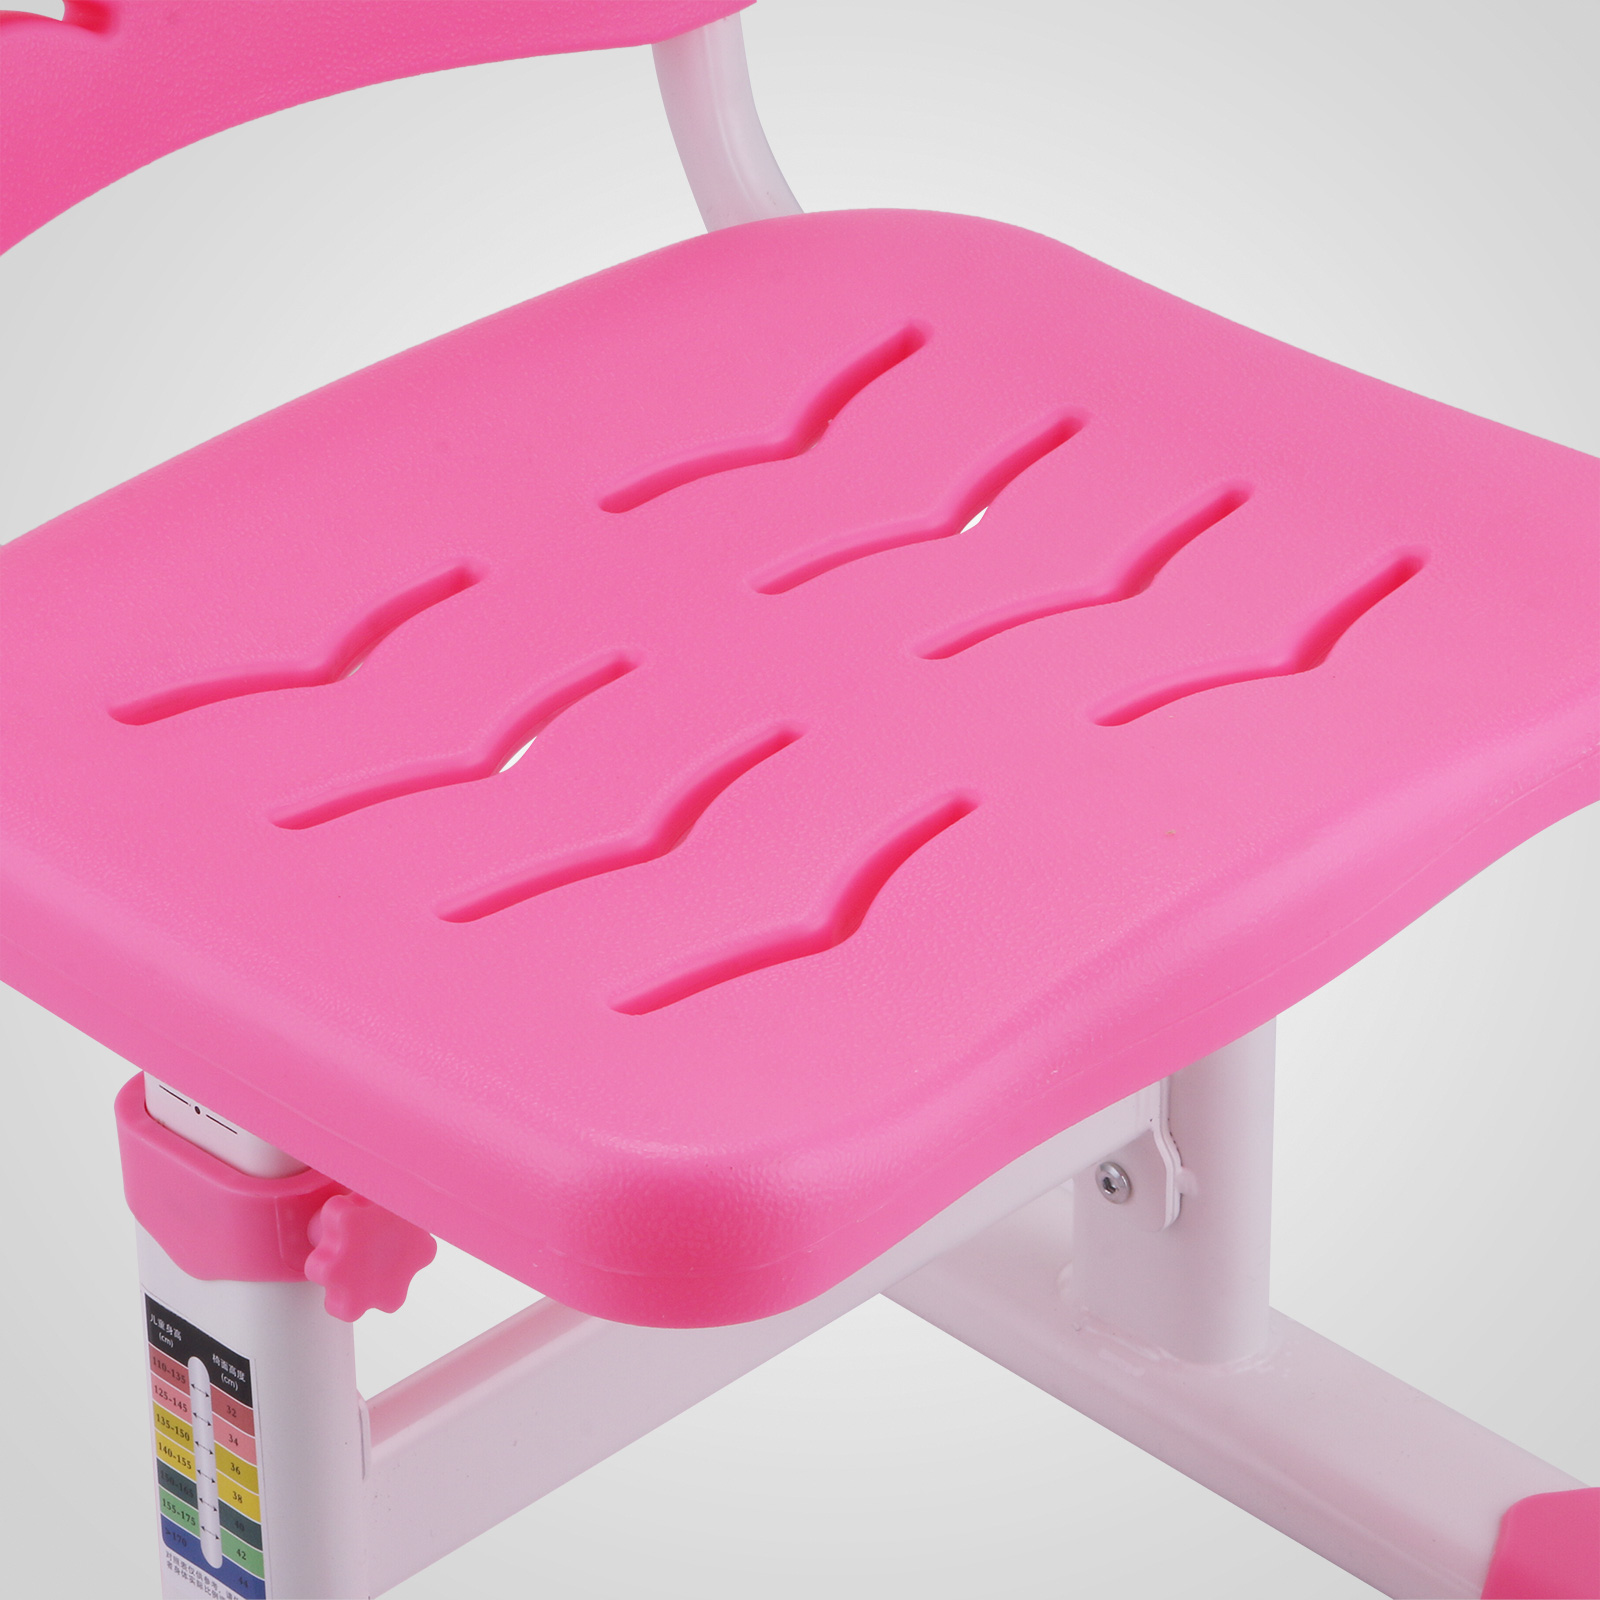 toddler reading chair graco duodiner lx high botany children kid study desk andchair adjustable height